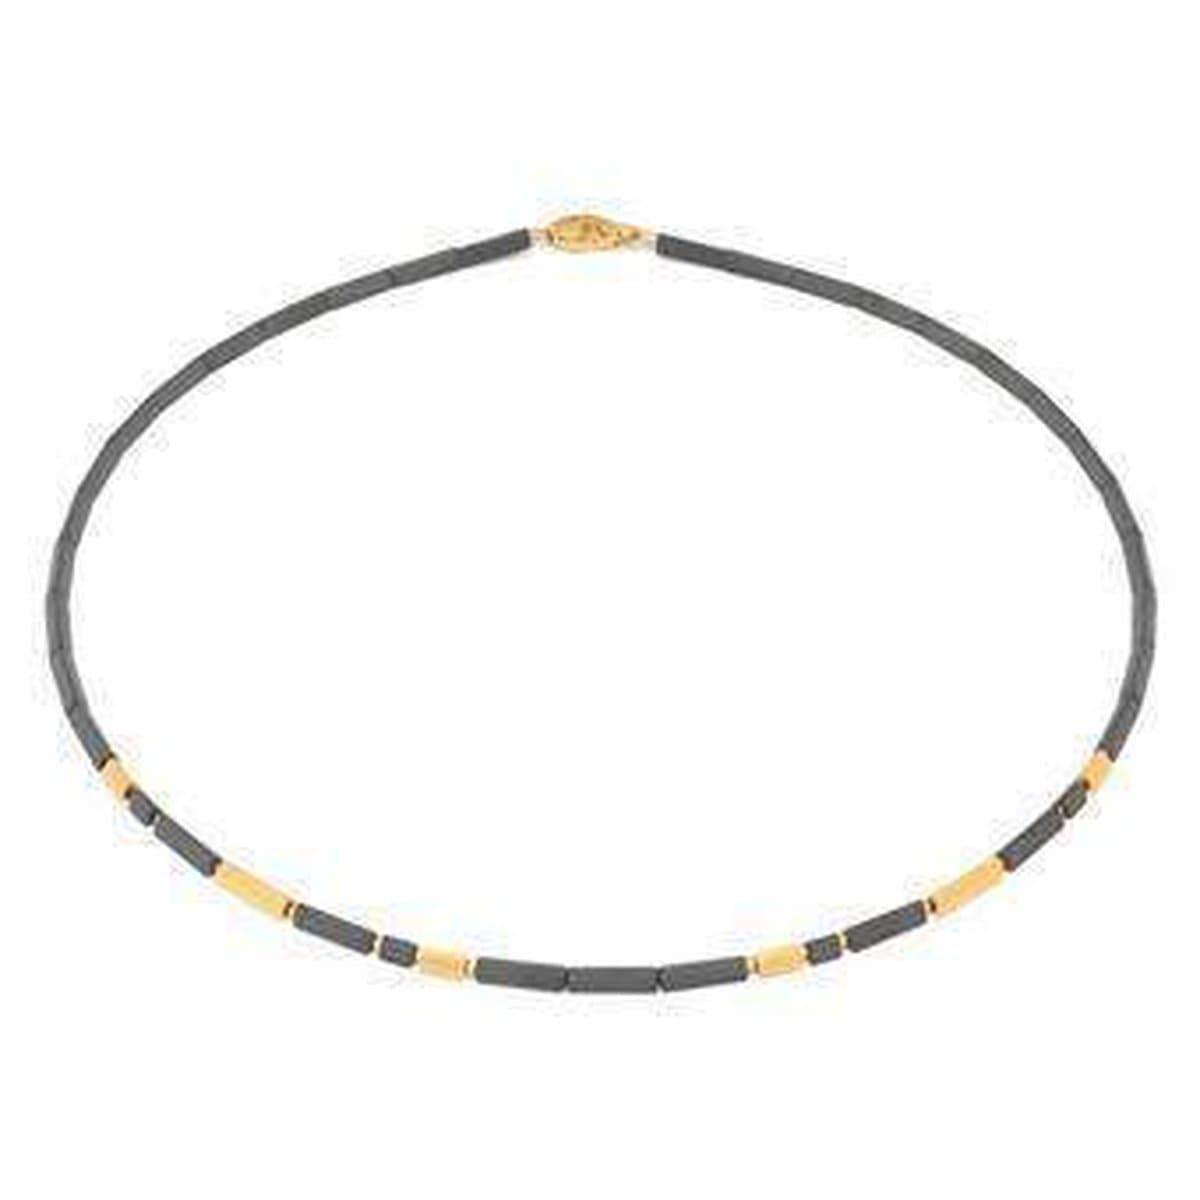 Daina Hematine Necklace - 85718276-Bernd Wolf-Renee Taylor Gallery